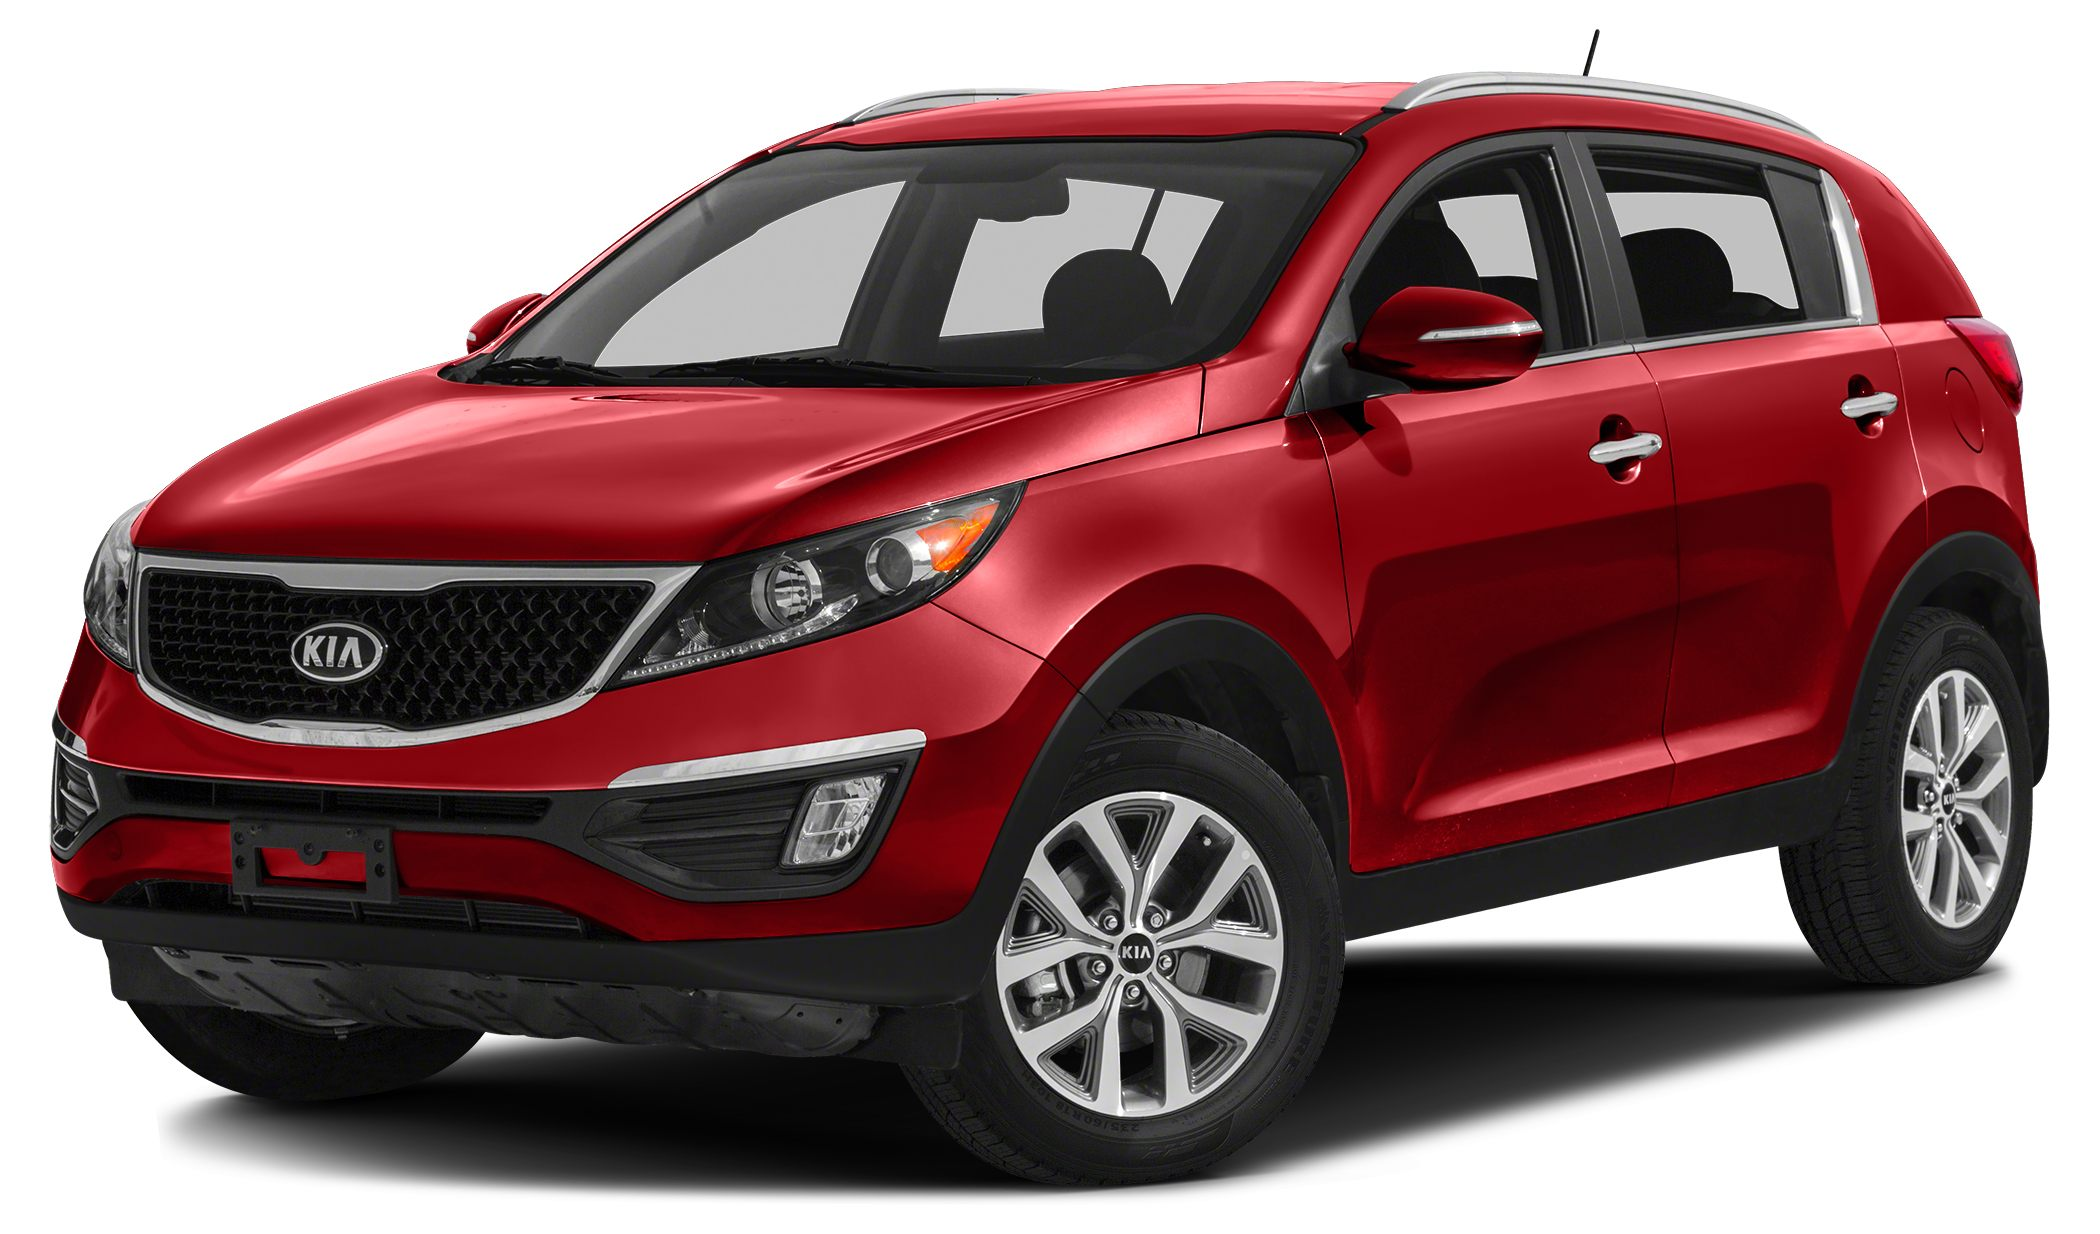 2015 Kia Sportage EX Power To Surprise Get Hooked On Regal Honda Type your sentence here If you